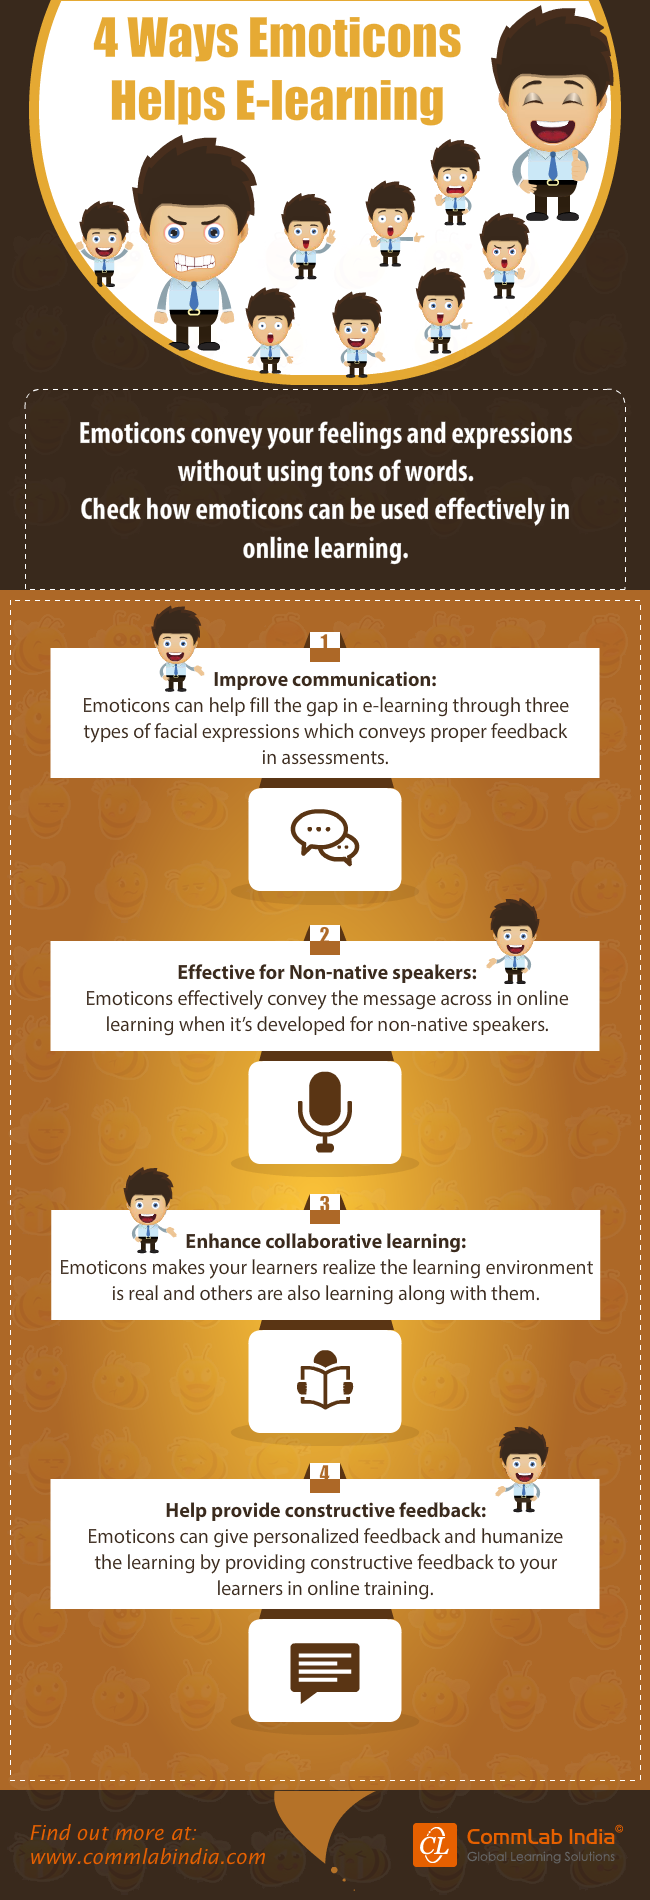 4 Ways Emoticons Helps E-Learning [Infographic]